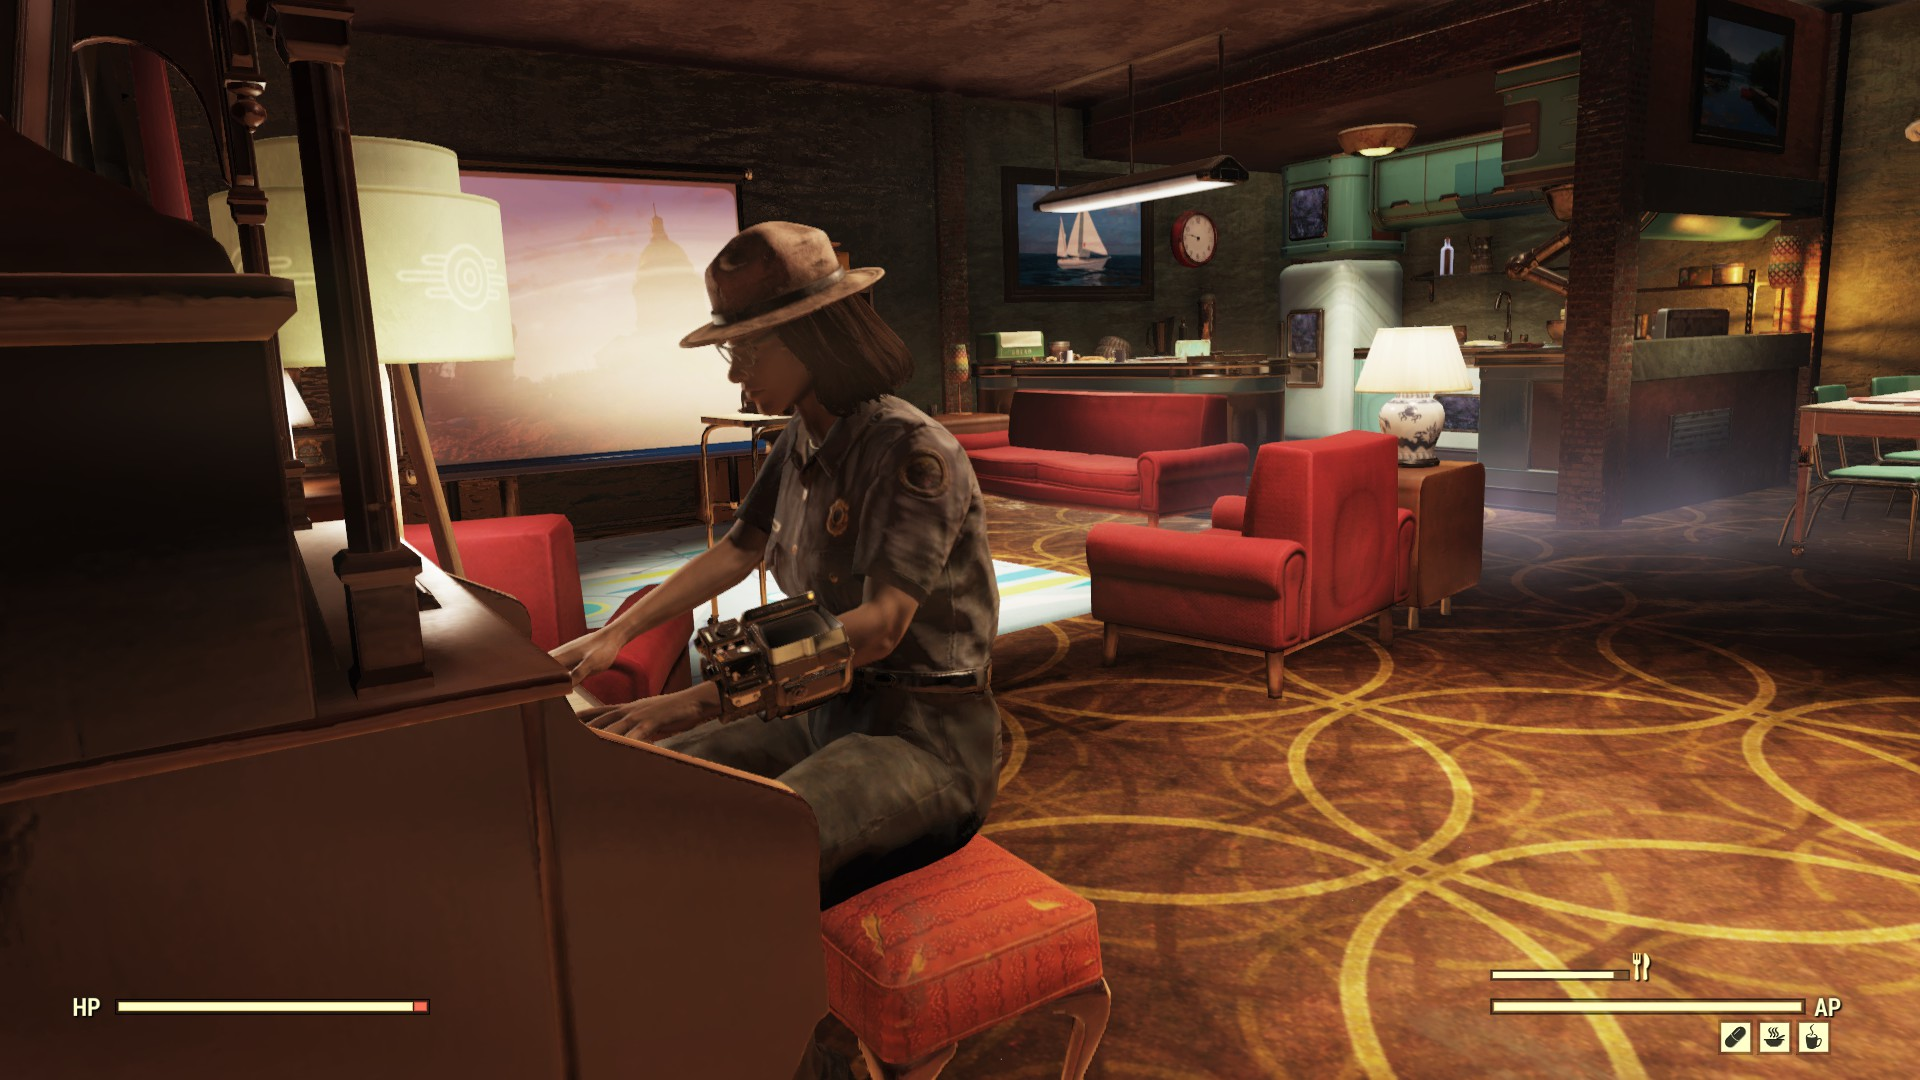 A screenshot showing Sin's player character sitting down at a piano and playing a tune